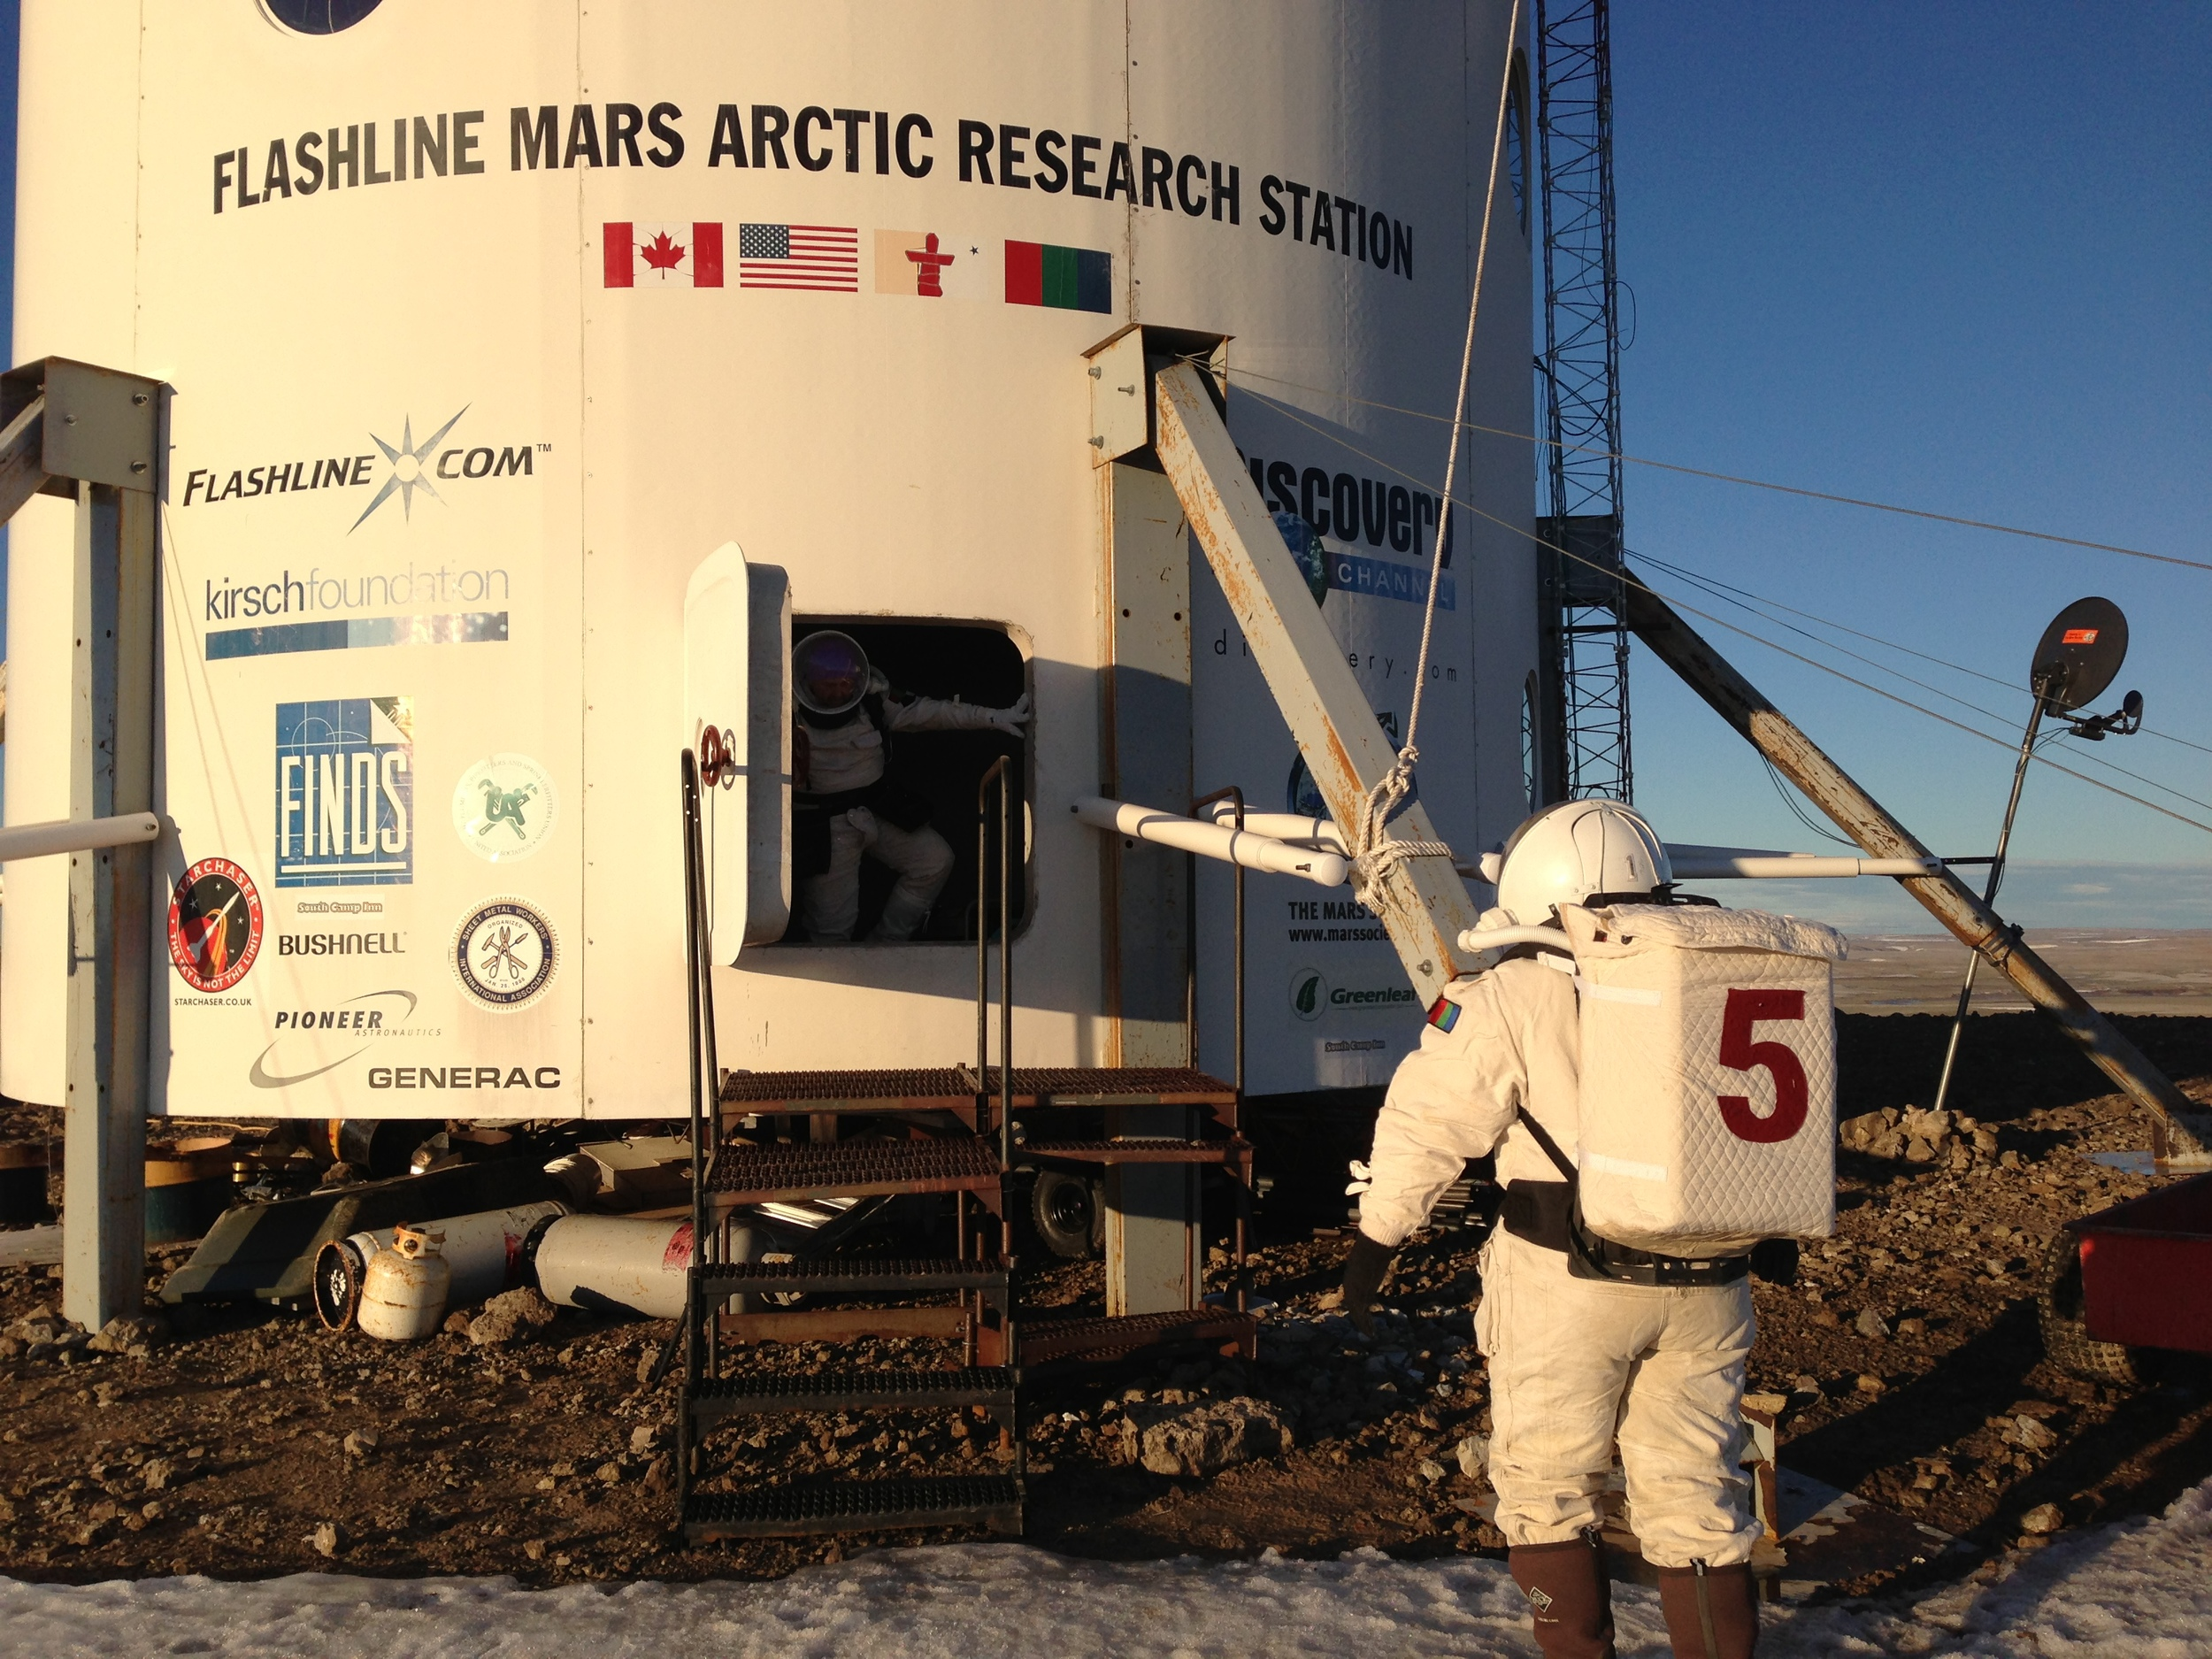 """Keeping it real - or close to it. Everything the crew at FMars does must simulate a real mission on Mars. Want to go for a walk? Put on your spacesuit, sit in the airlock to """"decompress"""", and then conduct your extravehicular activity. But watch out for the polar bears. Source:  Mars Society MA365 Project"""